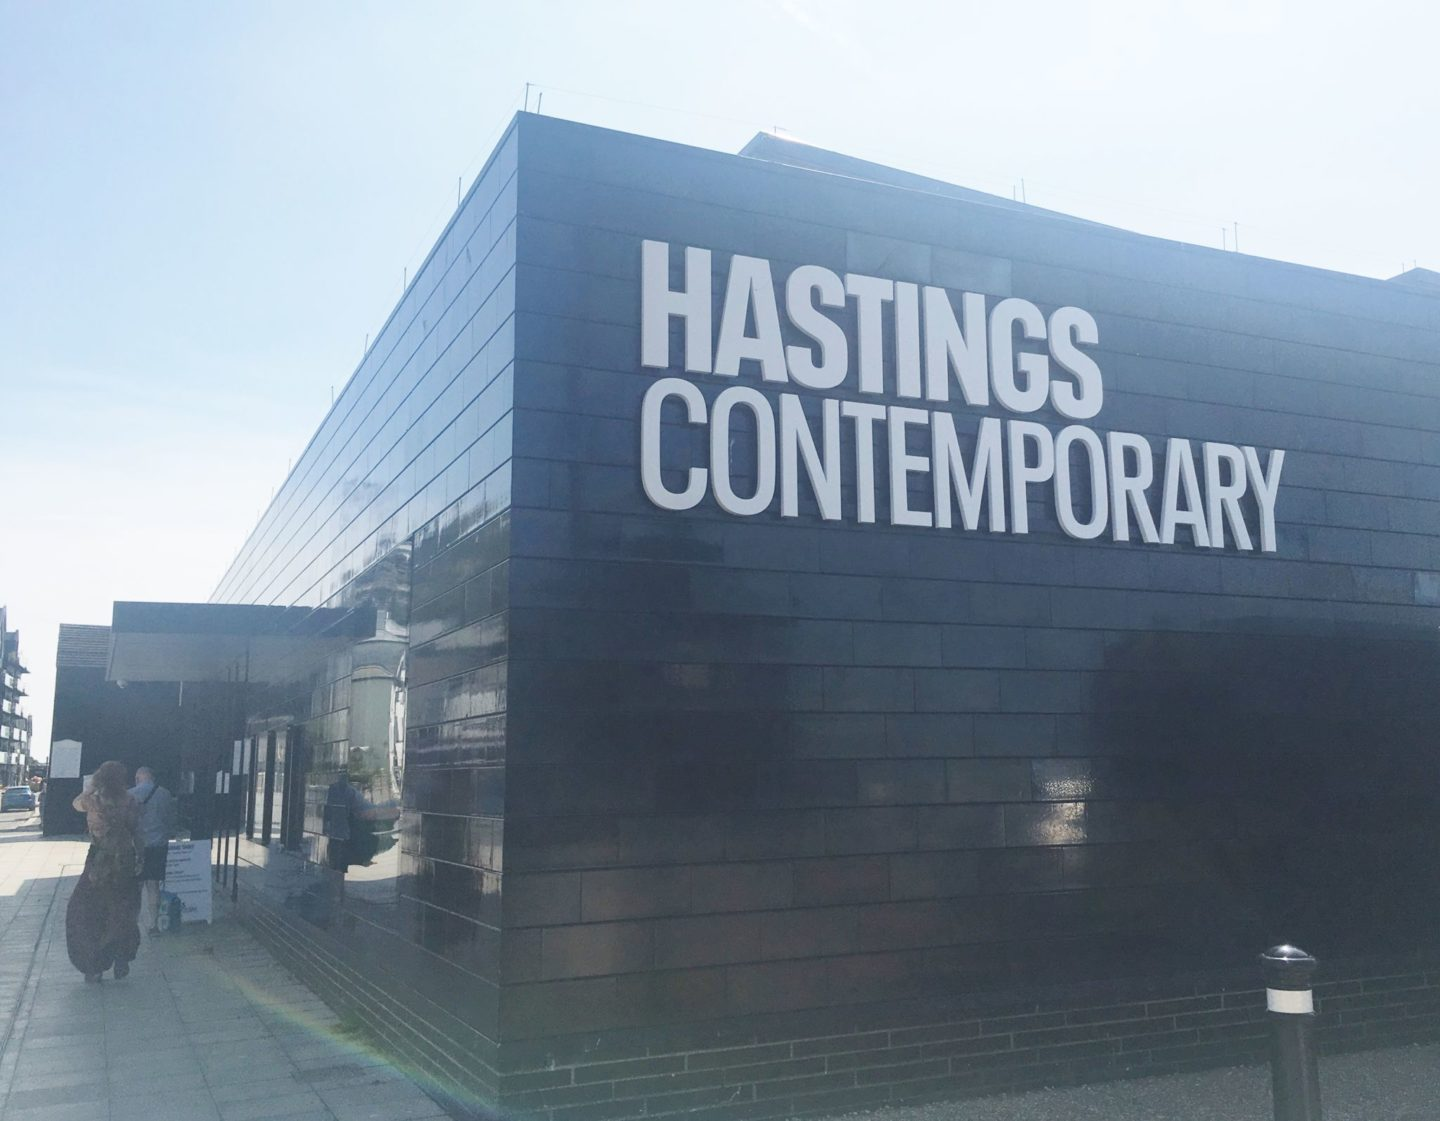 Thinking about the Hastings Contemporary